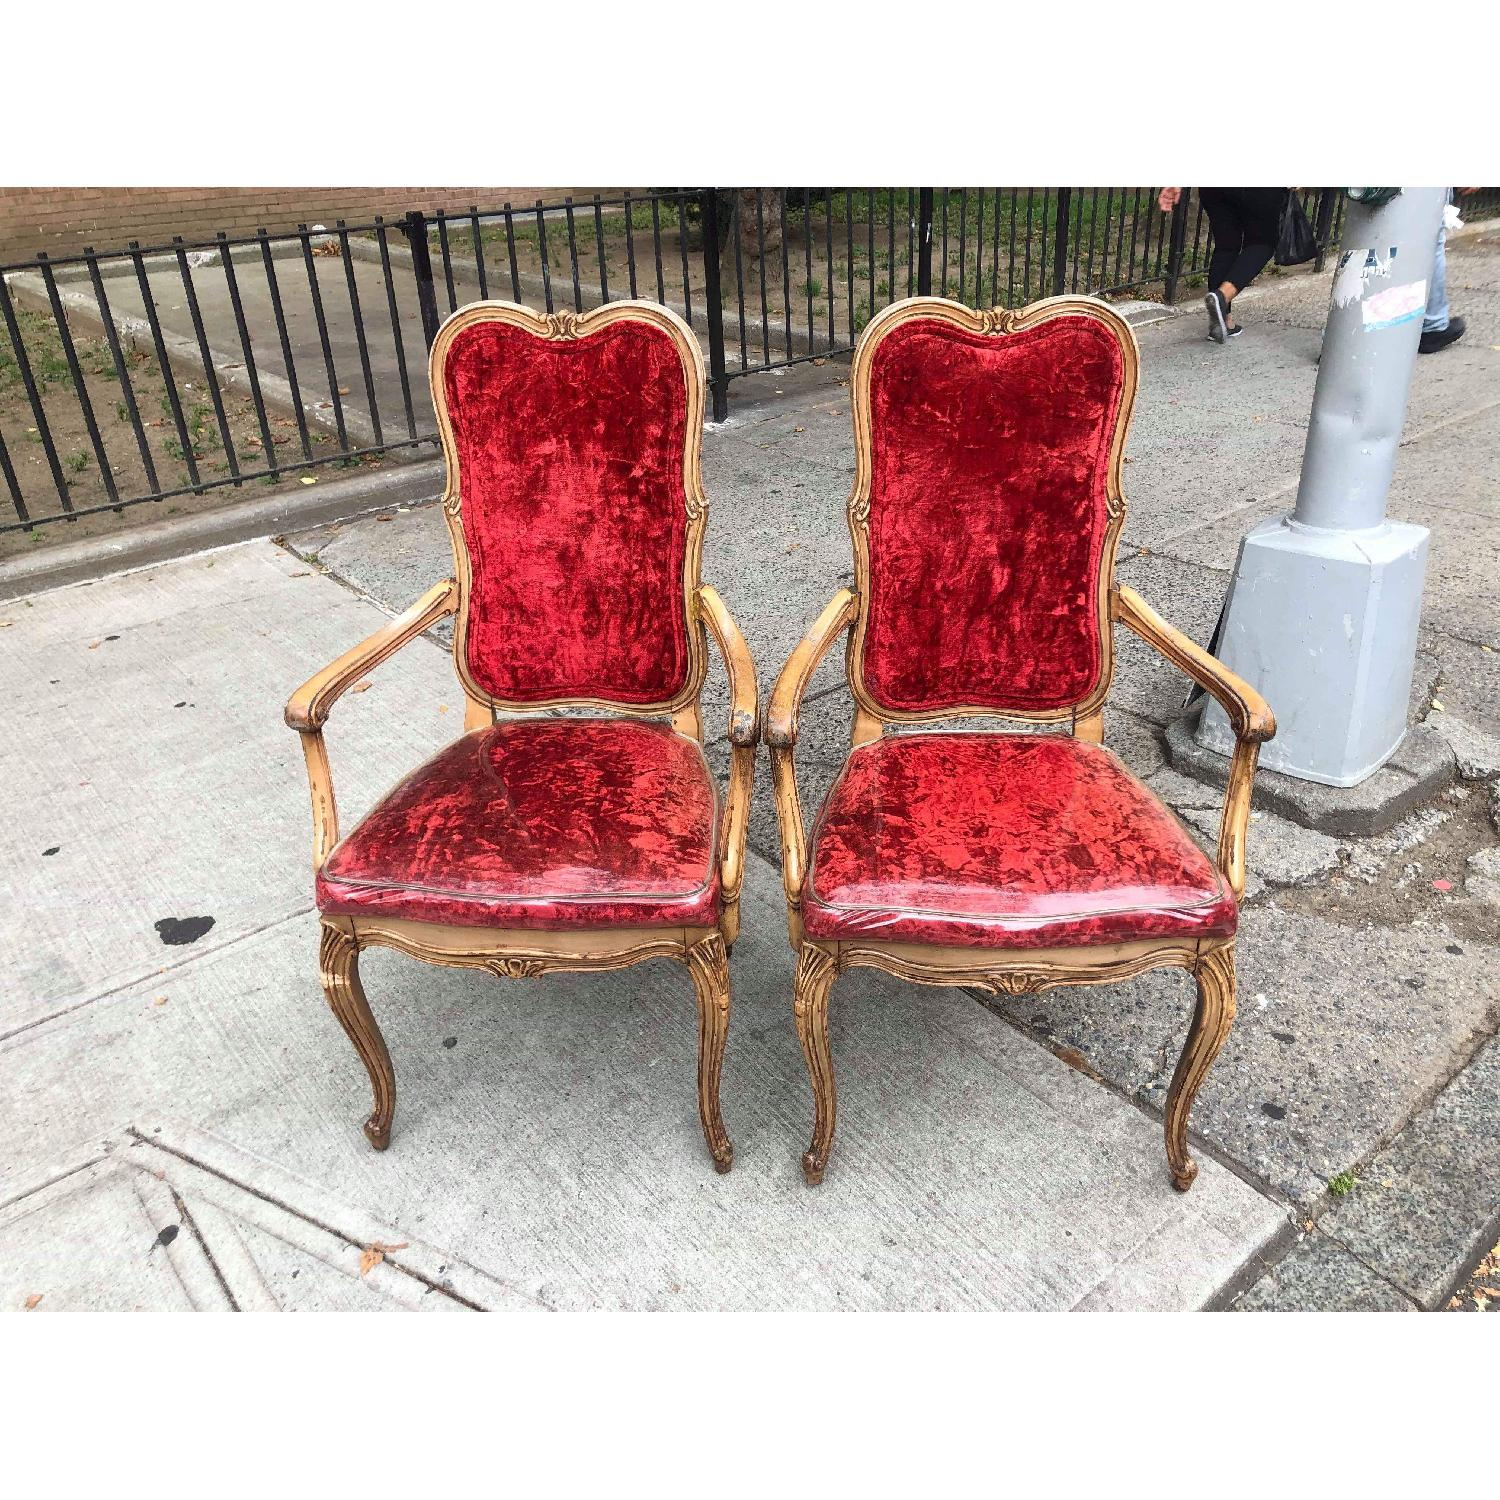 Vintage French Style Red Armchairs - image-13